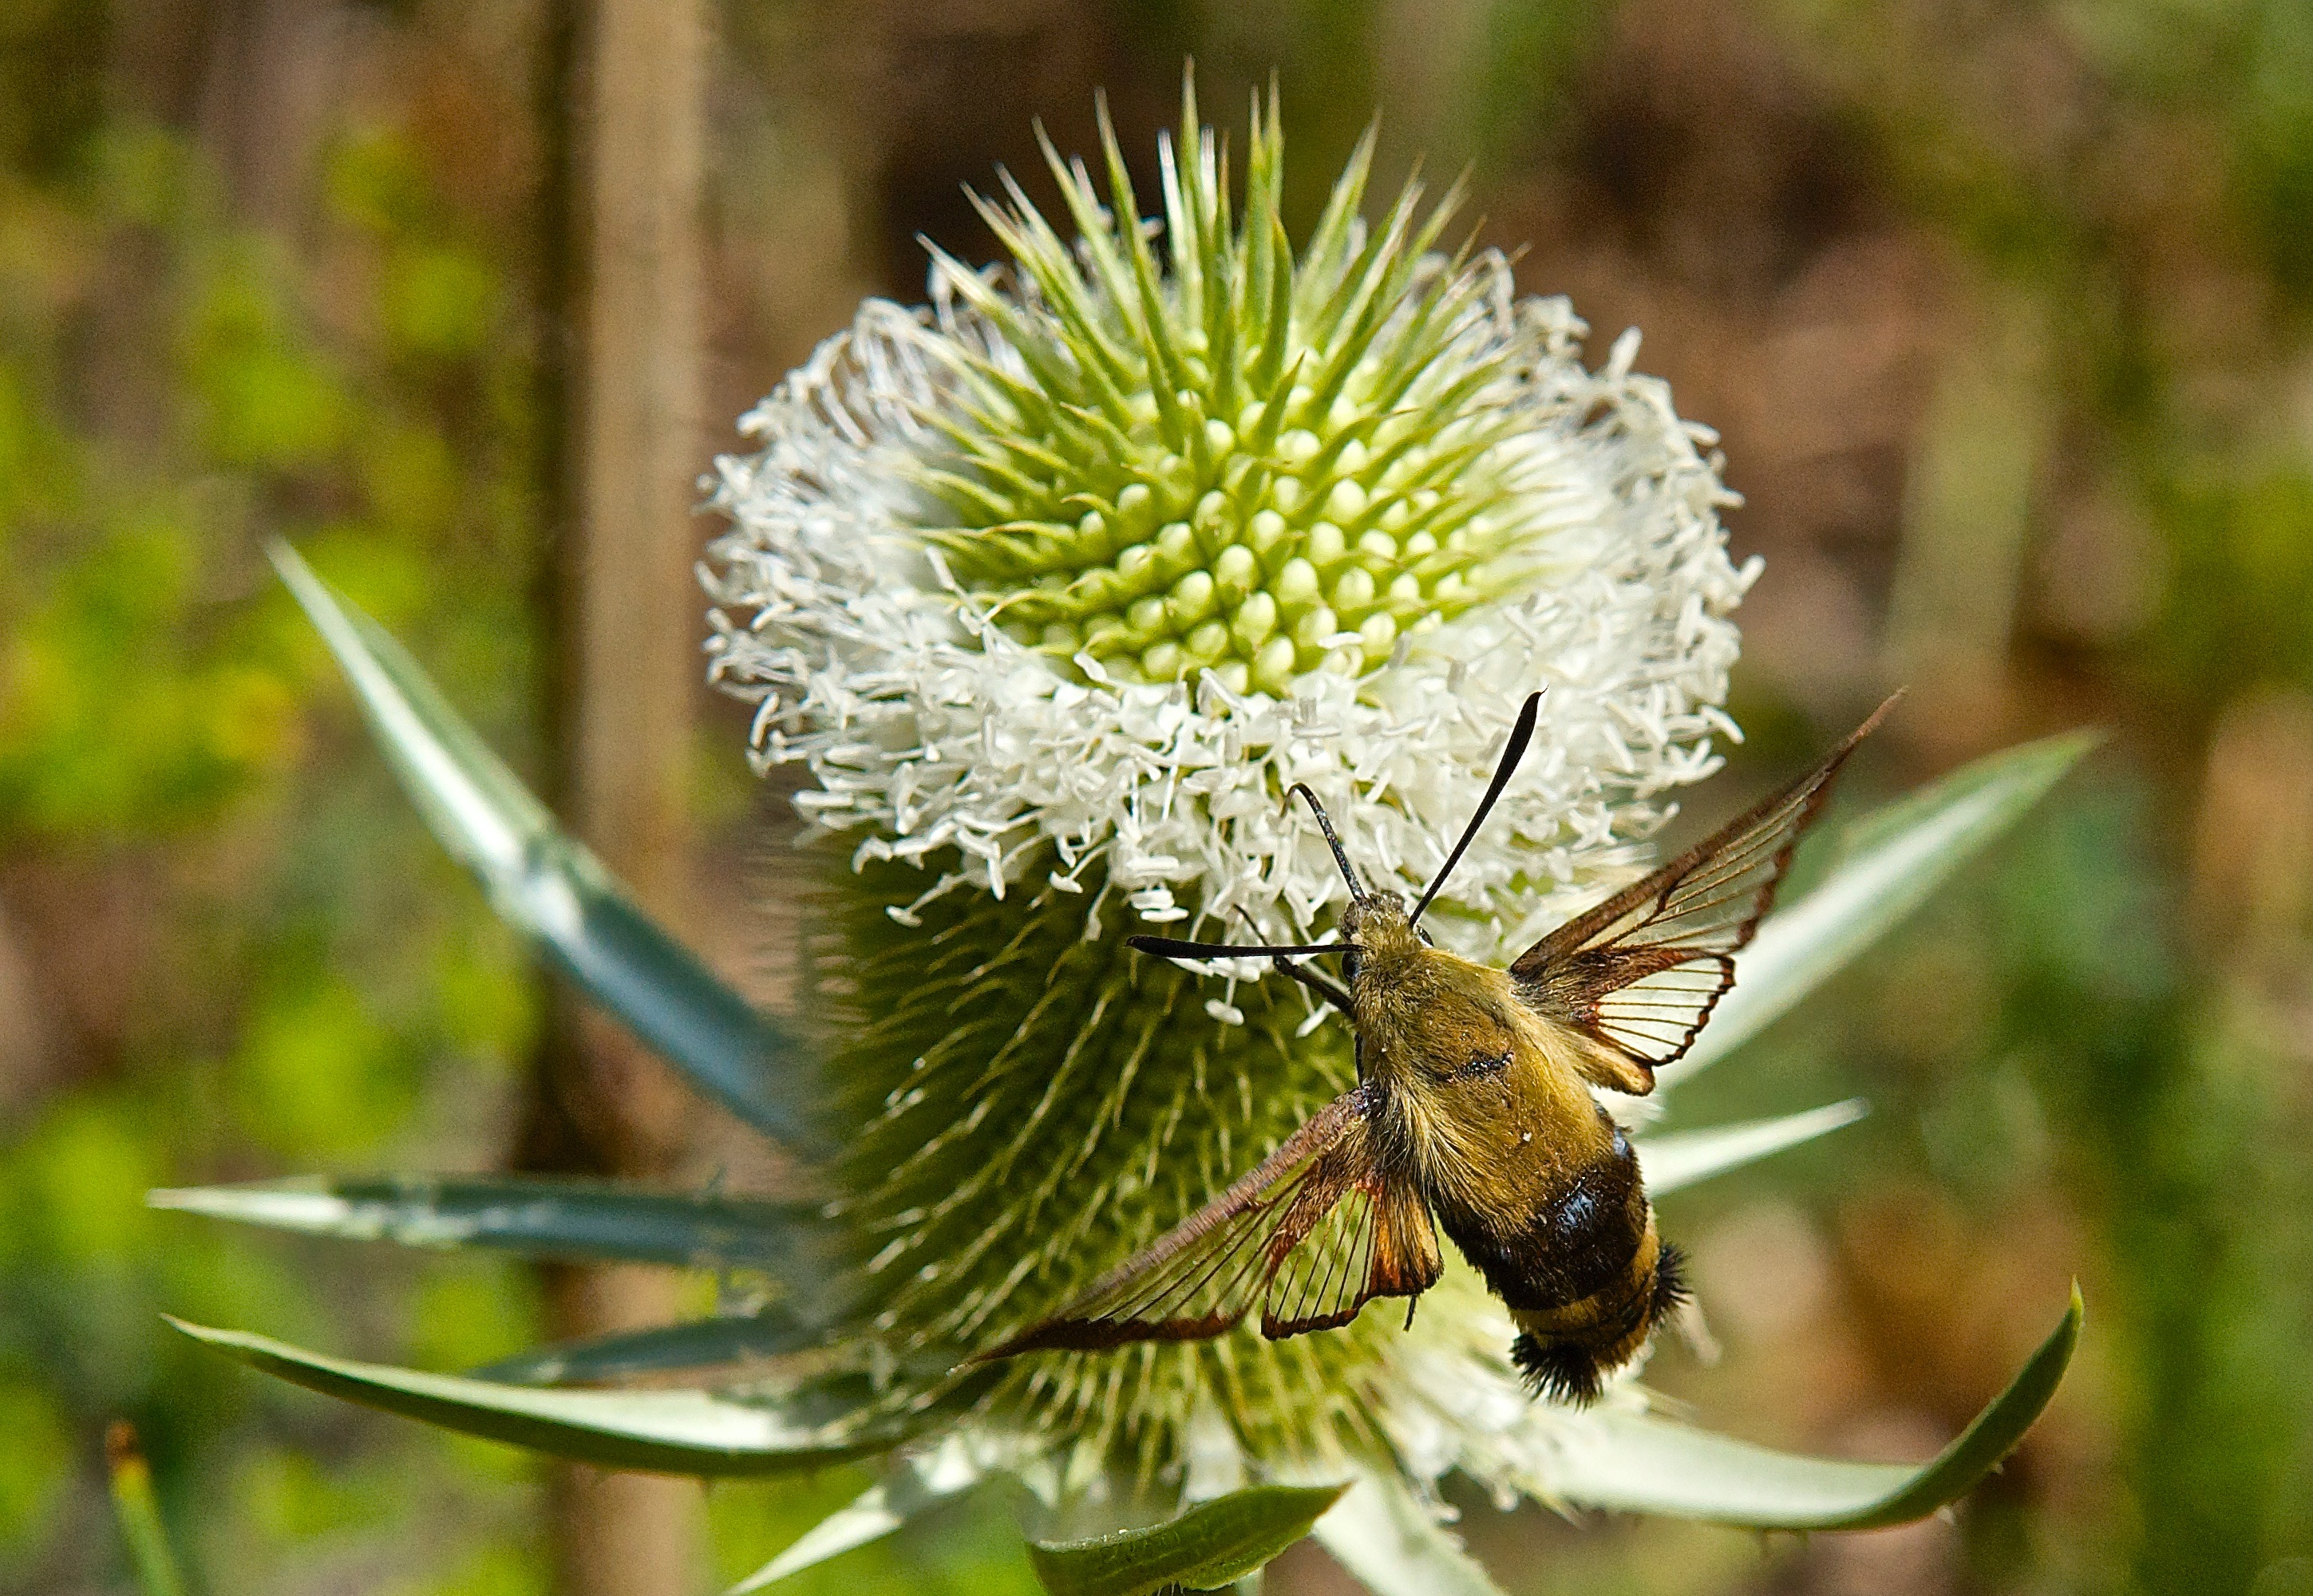 Teasel (Dipsacus fullonum) and Clear-Wing Moth (Hemaris diffinis)